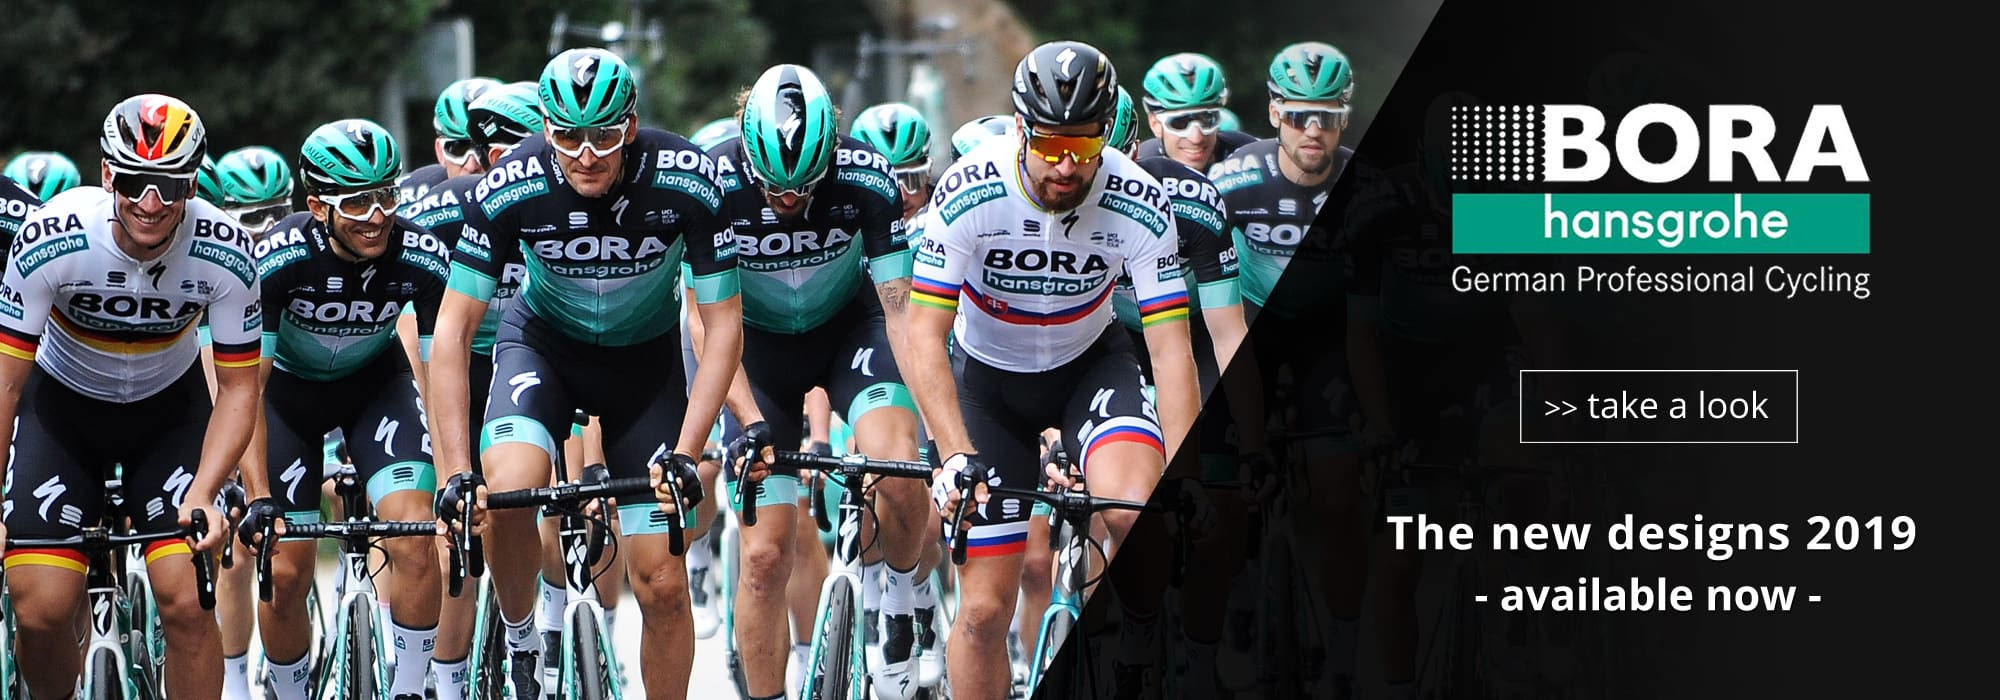 Bora Hansgrohe 2019 - available now